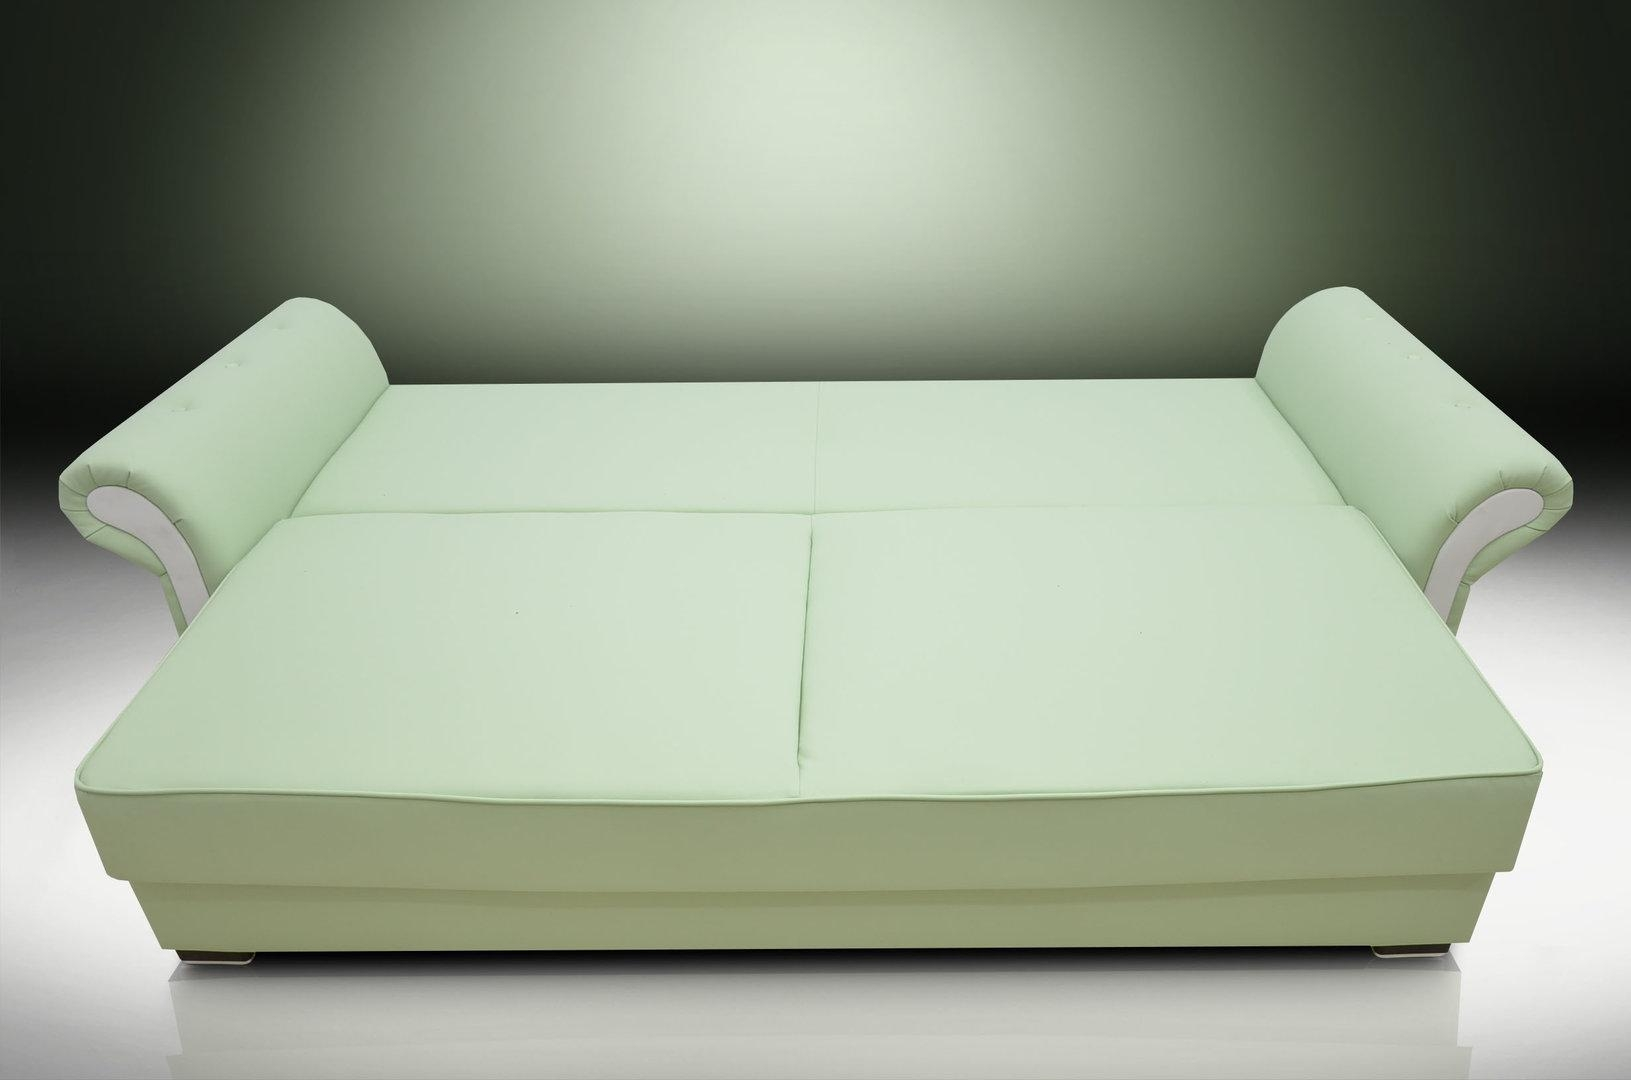 Bed Gemma Eco Leather Aqua/white For Aqua Sofa Beds (Image 4 of 20)